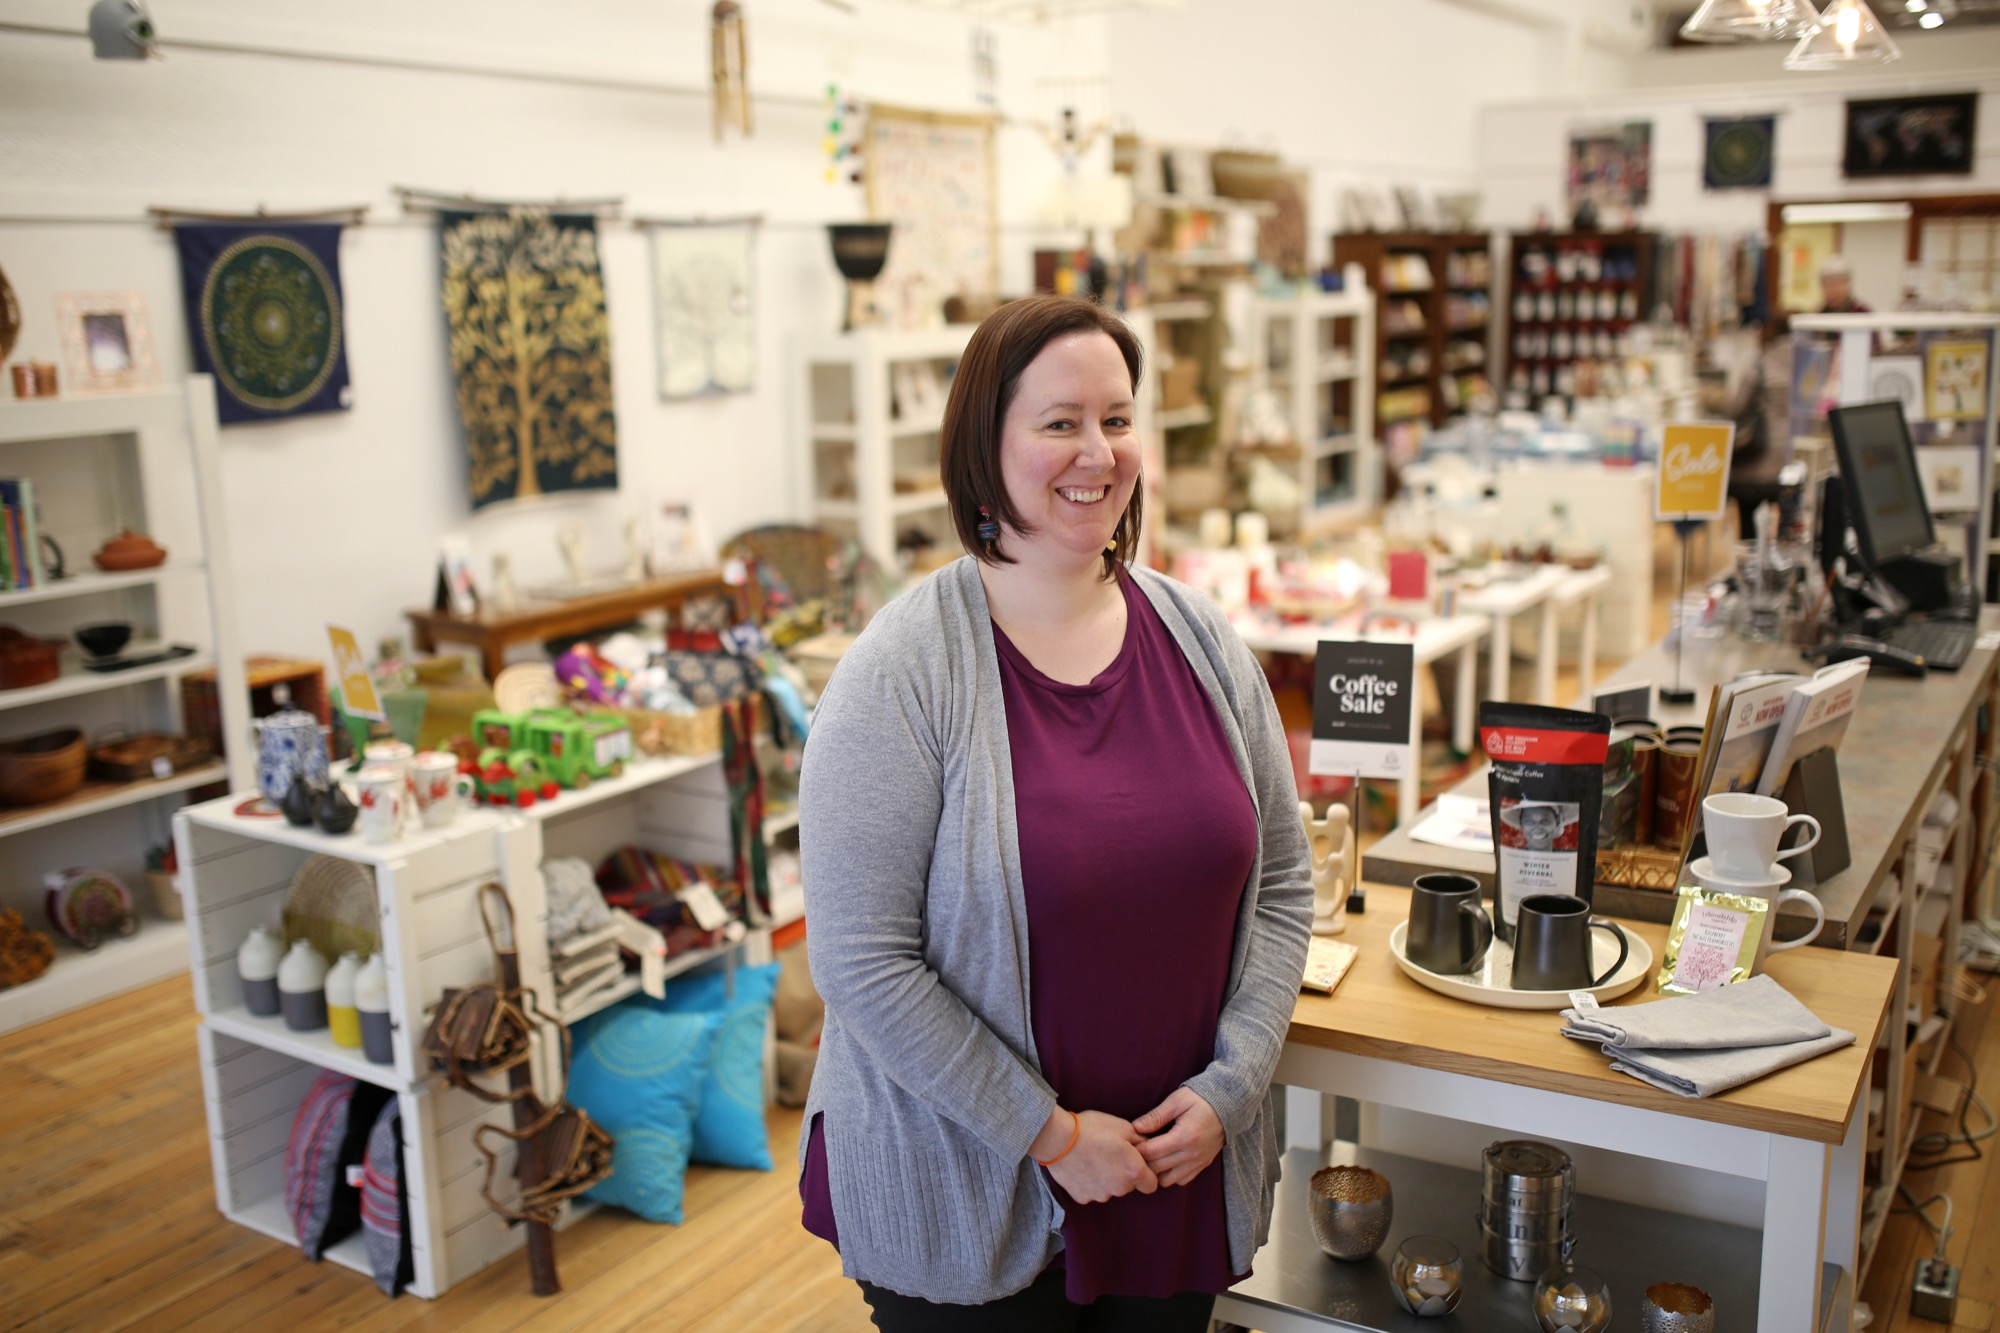 Meeghan Gavin, manager of Ten Thousand Villages, stands inside the Rosser Avenue store, which will be named the 2020 recipient of the Global Citizenship Award at The Marquis Project's AGM.